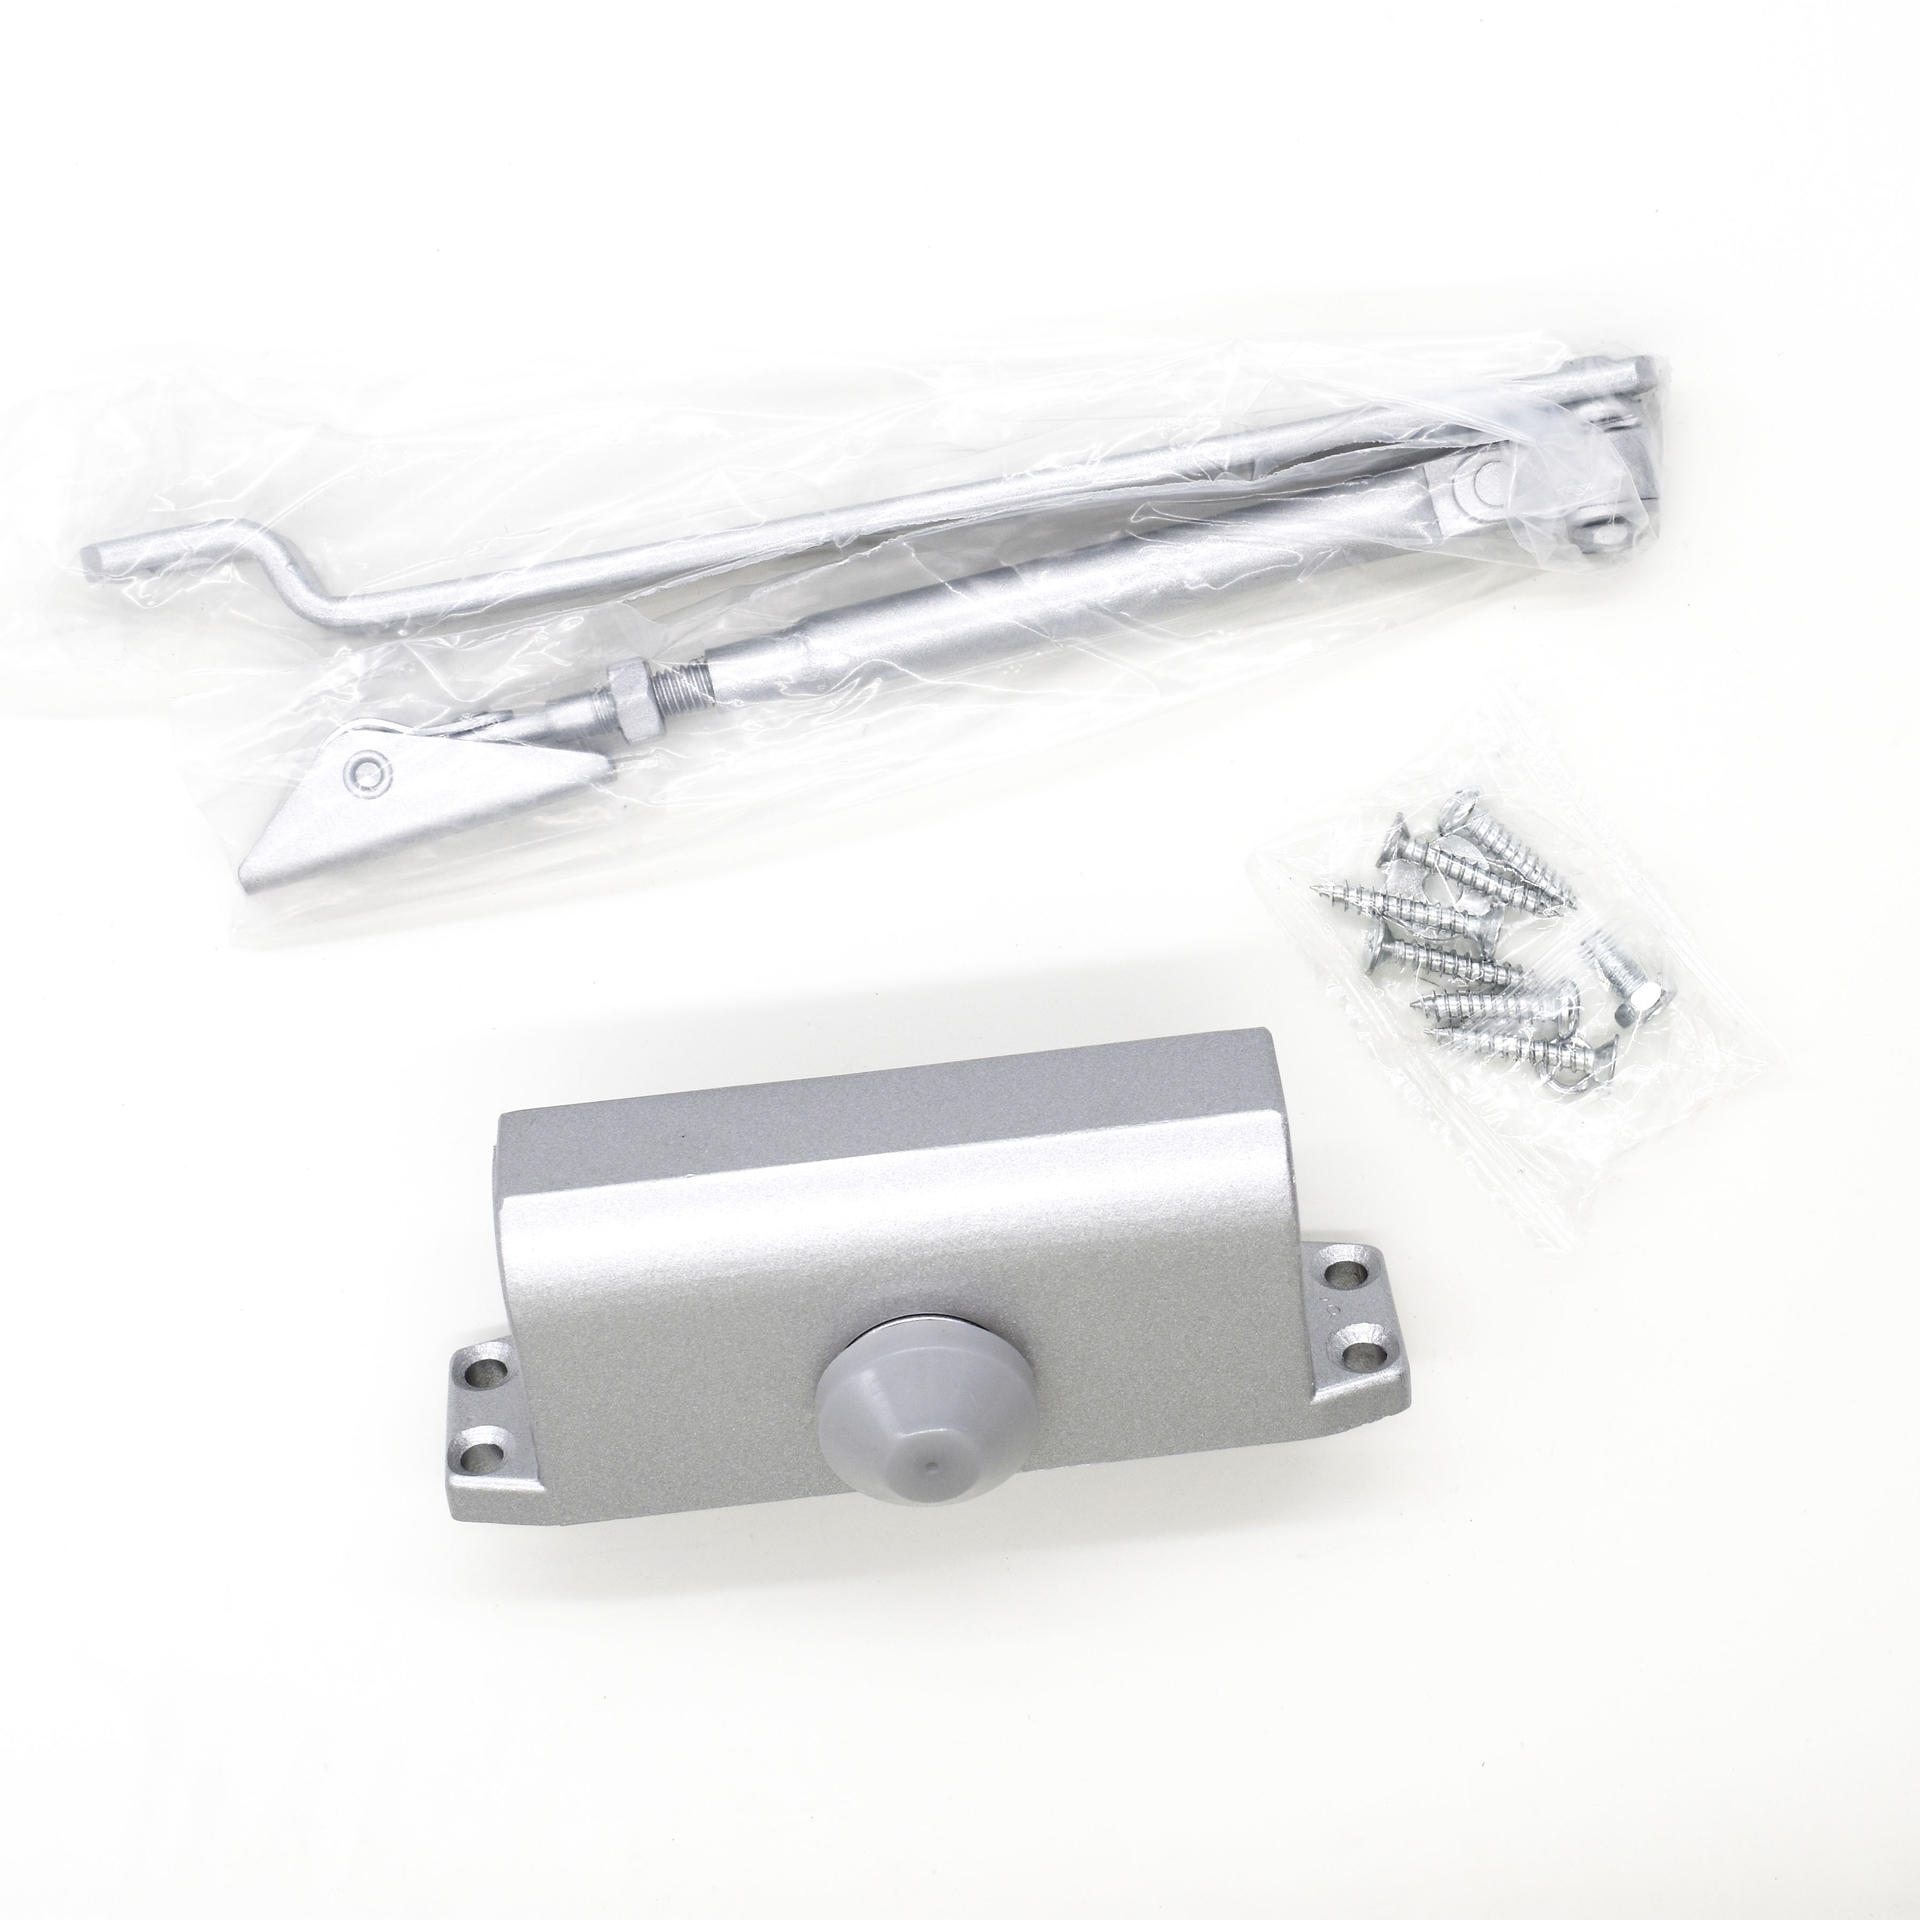 A-051B double spring door closers